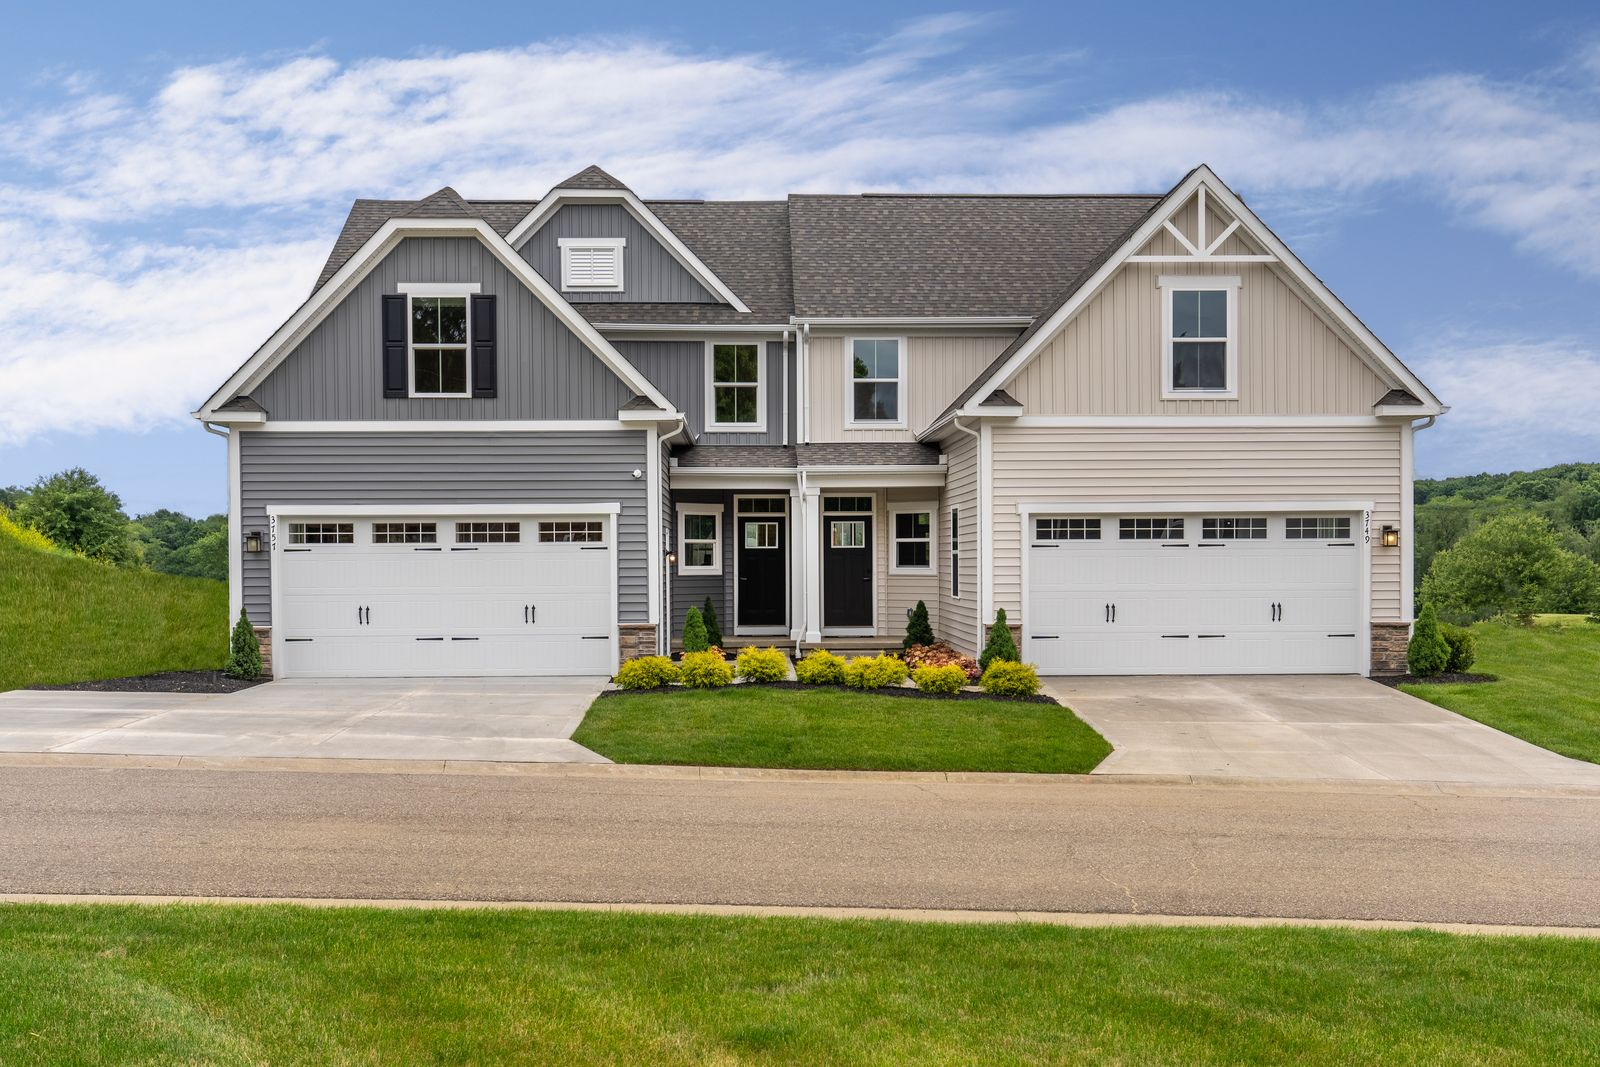 NEW DUPLEX MODEL HOME NOW OPEN:Introducing the Calvert Duplex with 1st floor owner's suite. Get the area's lowest payments with low Isle of Wight taxes!Clickto schedule a visit.